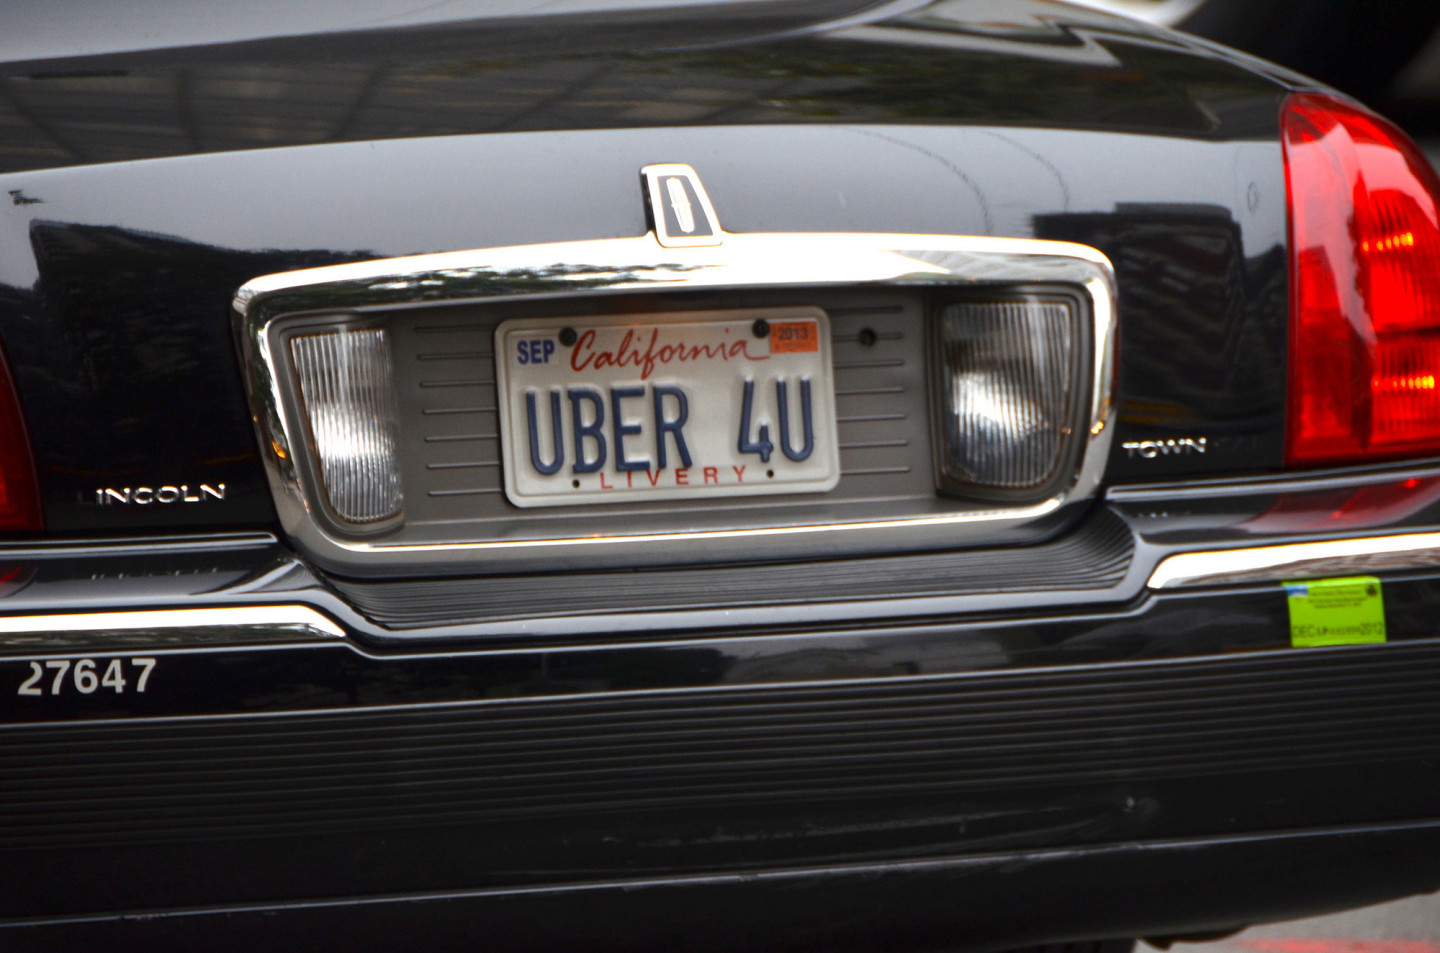 An Uber car drives in San Francisco, where ride services are now a major presence. (Adam Fagen/Flickr)